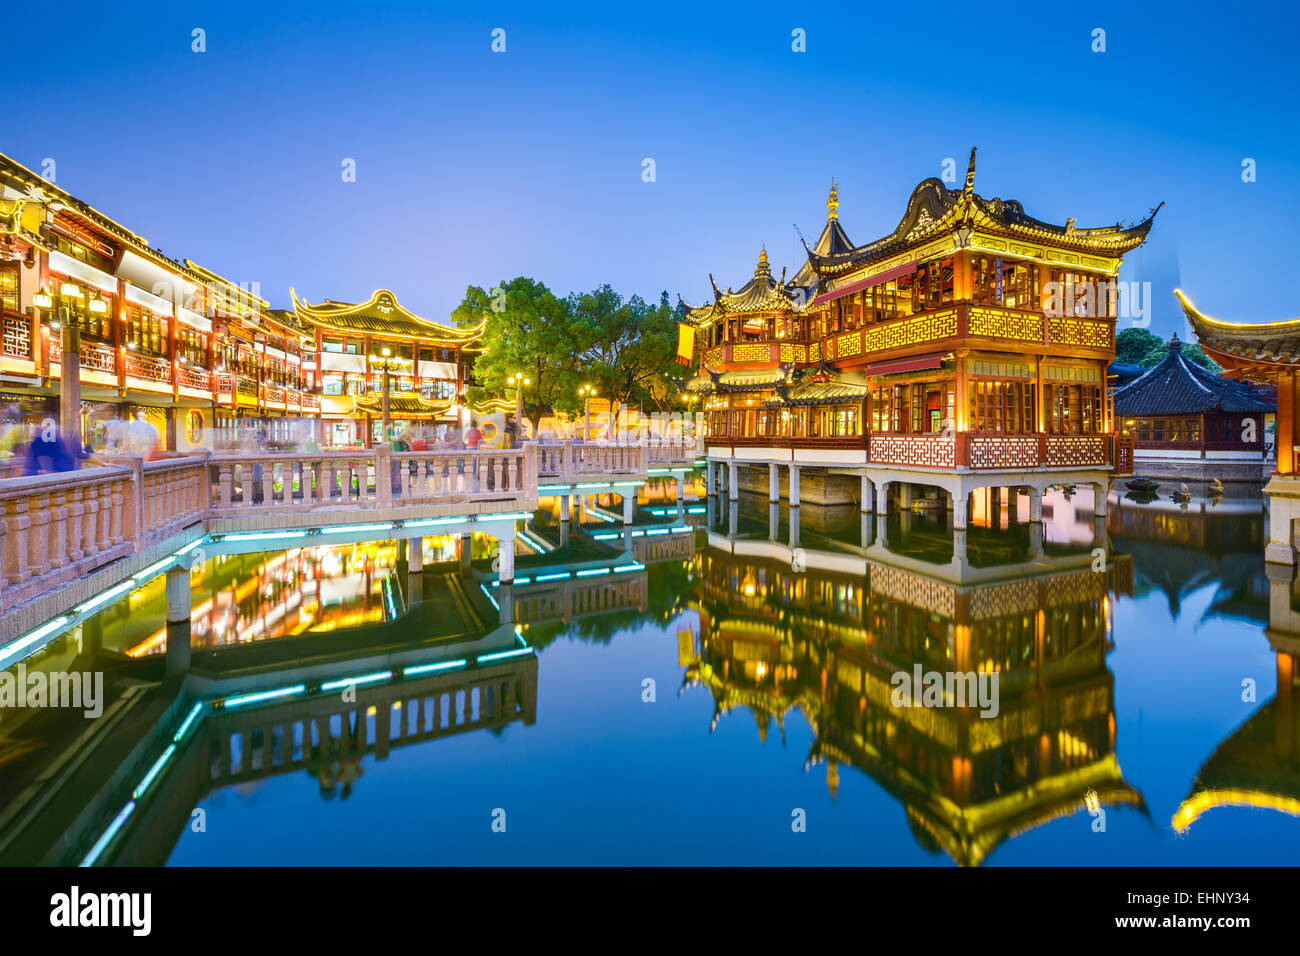 Shanghai, China view at the traditional Yuyuan Garden District. - Stock Image